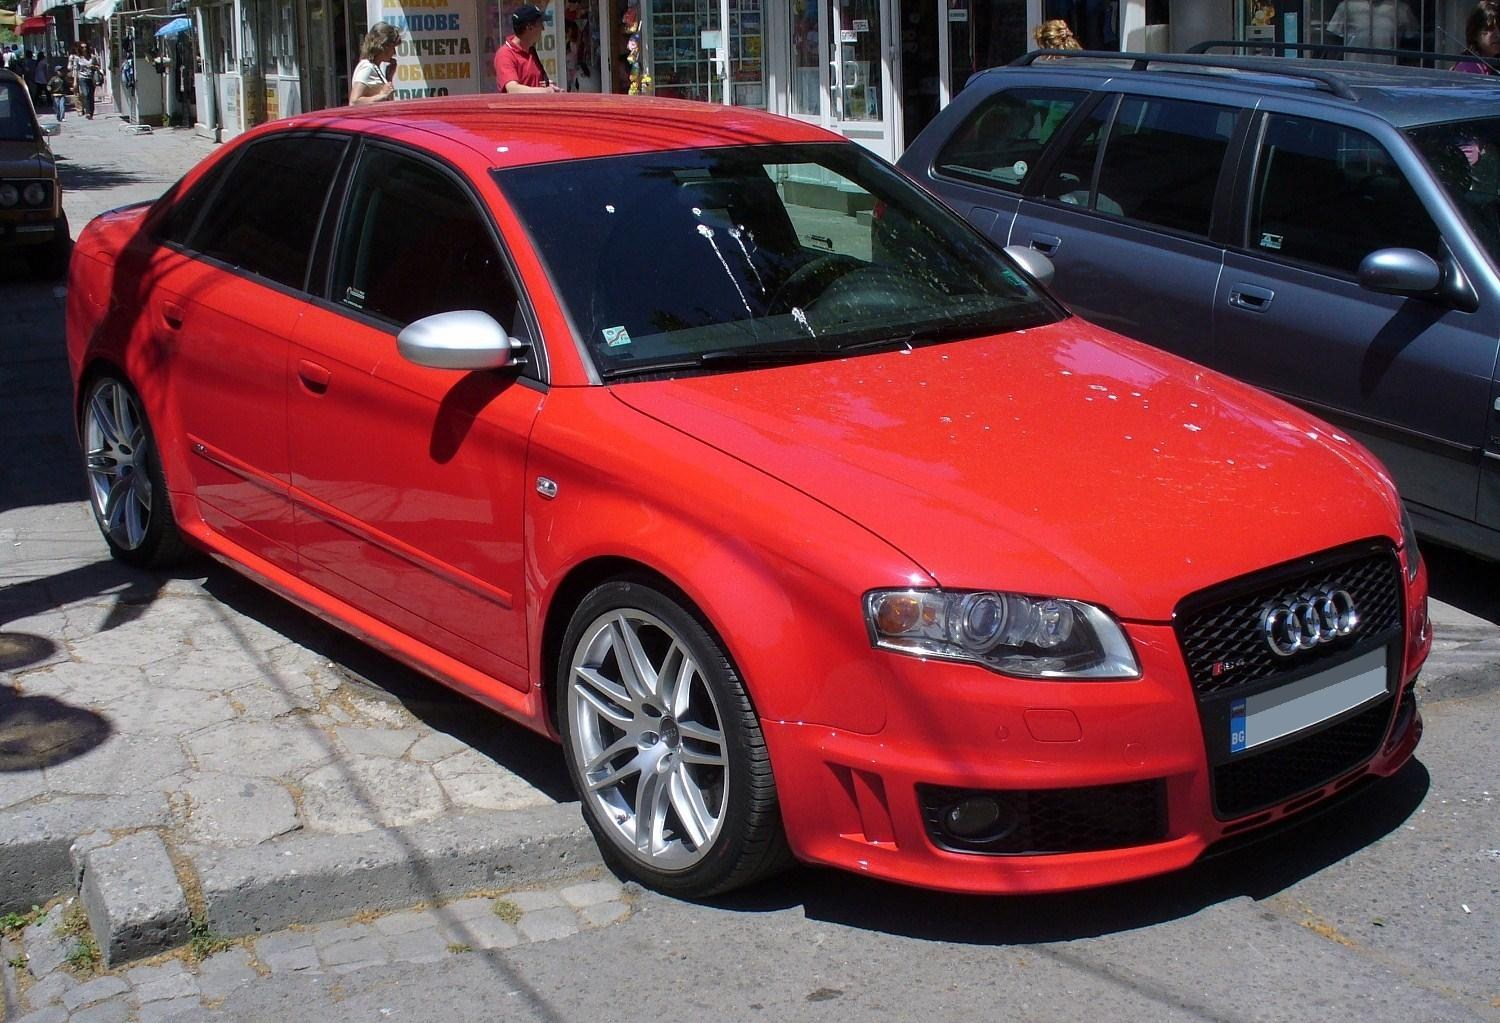 hight resolution of file audi rs4 rot jpg